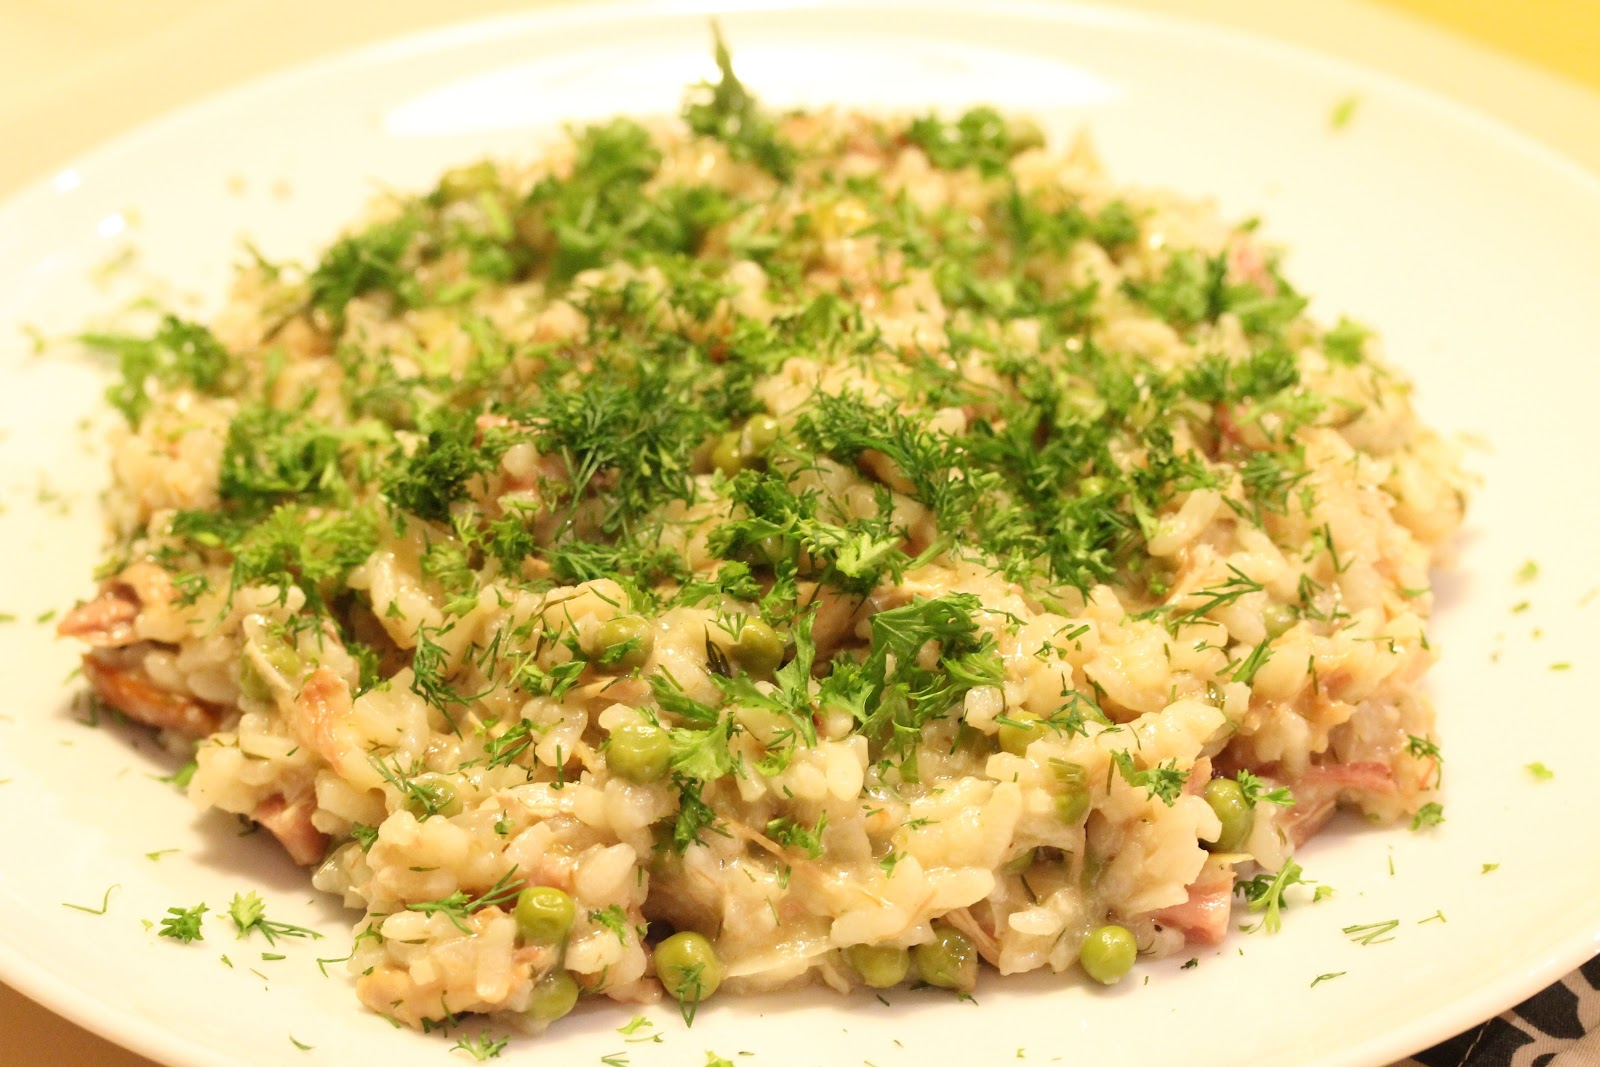 Wine, food and other pleasures: Turkey, pea and ham risotto